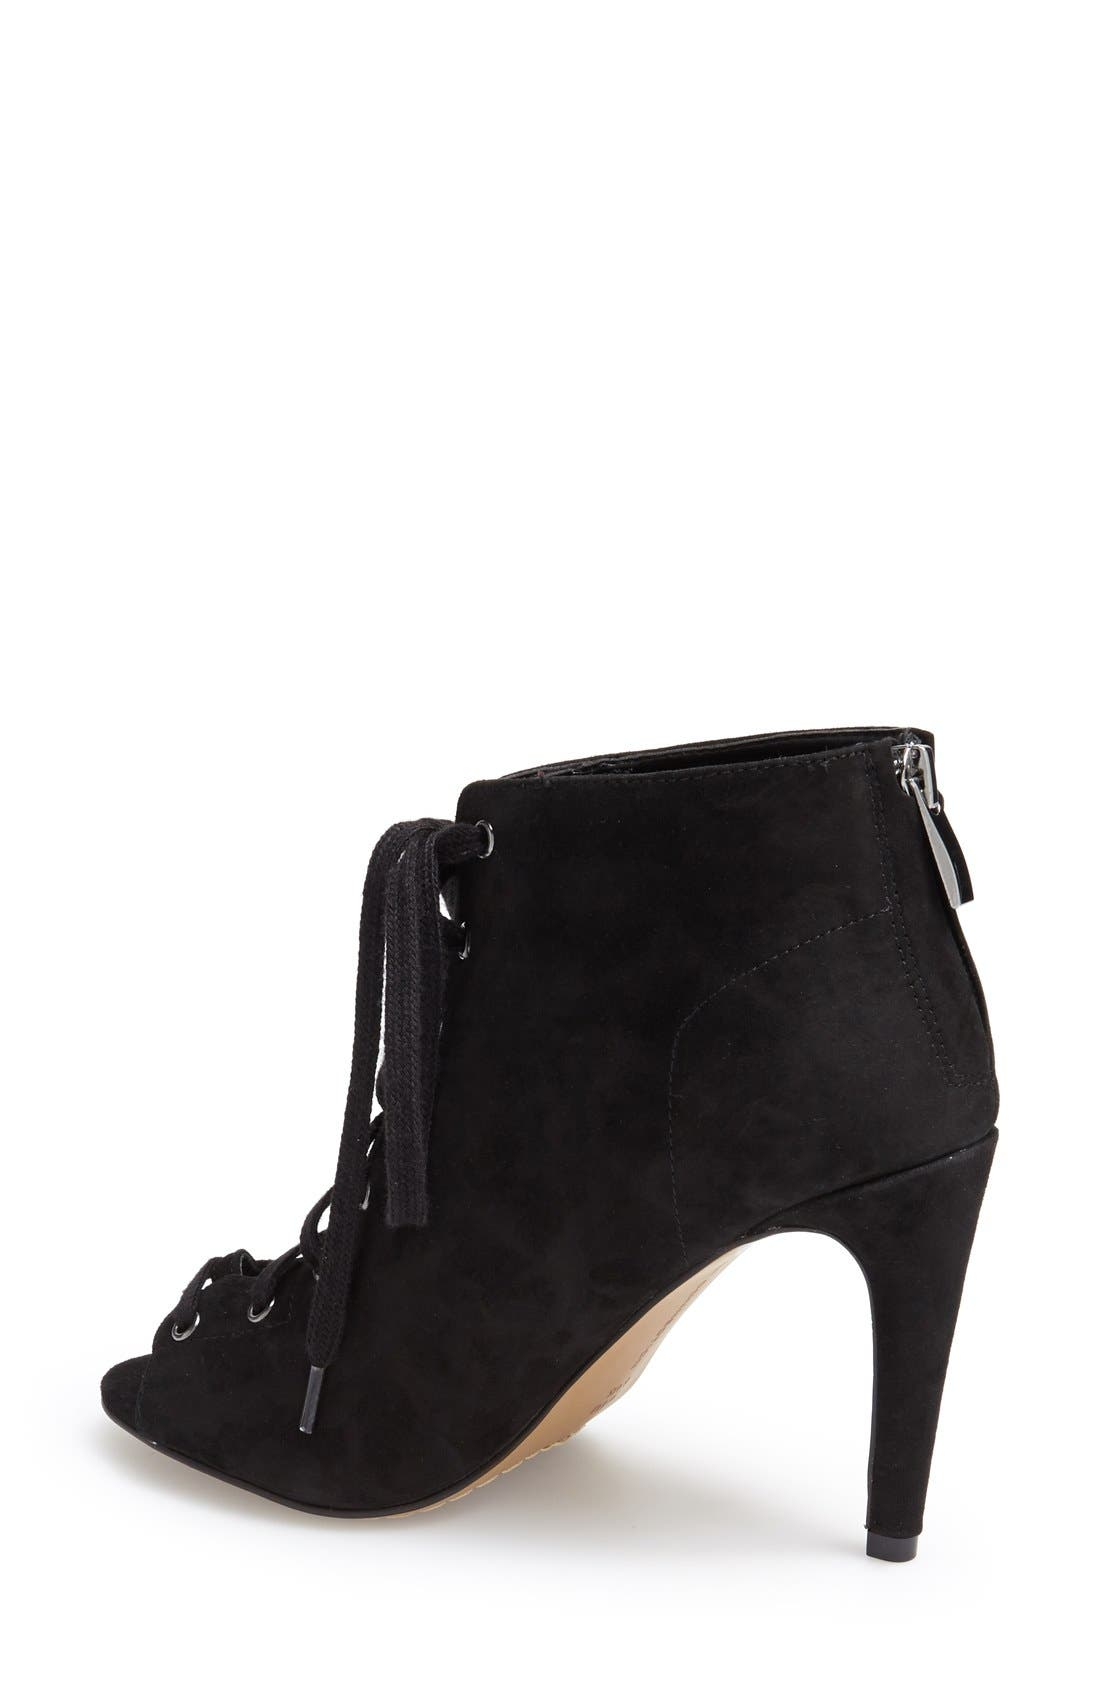 Alternate Image 2  - French Connection 'Quillan' Lace-Up Peep Toe Bootie (Women)